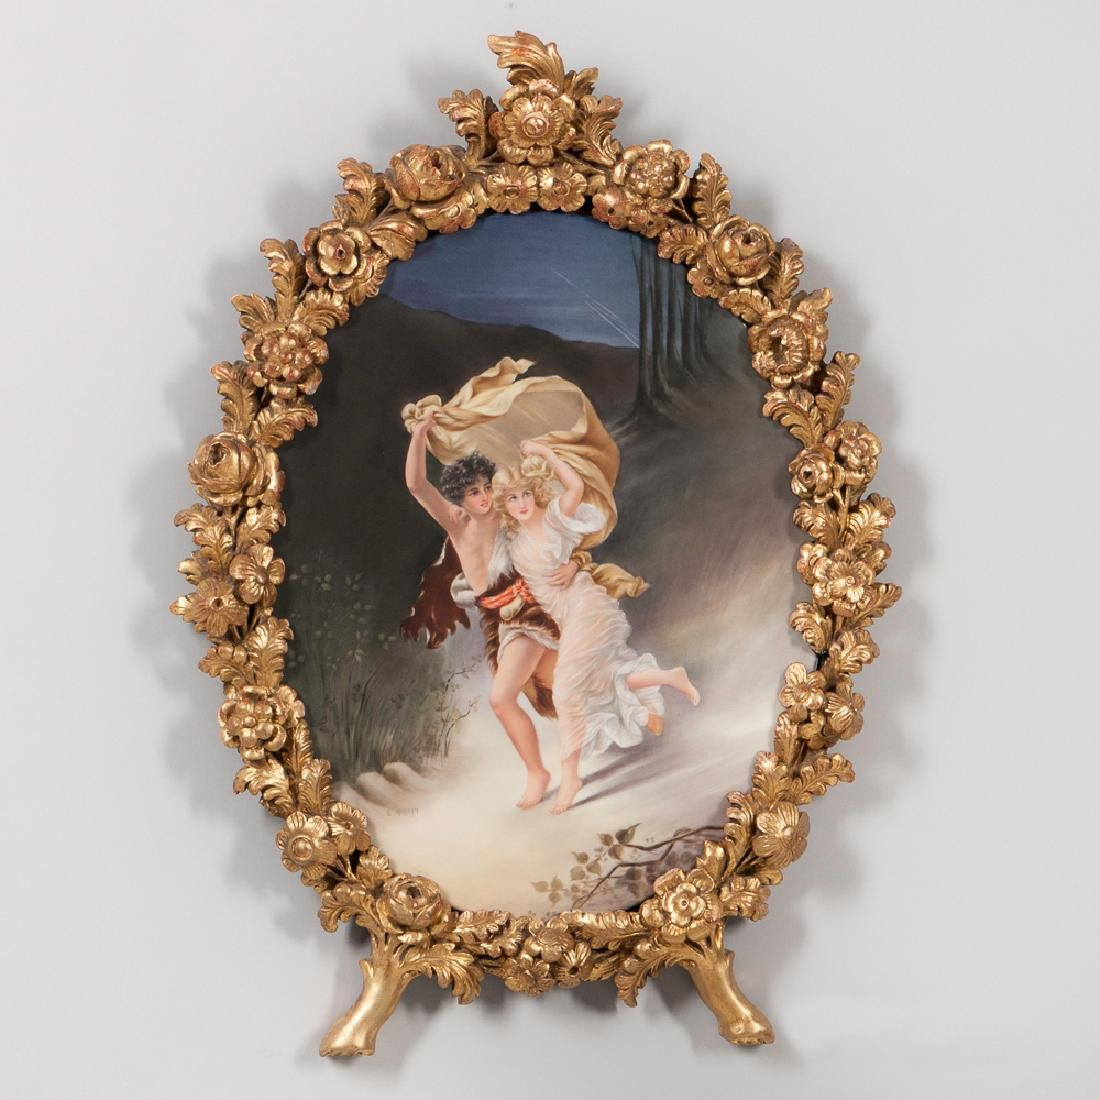 19th C. Continental Oval Porcelain Plaque of a Couple